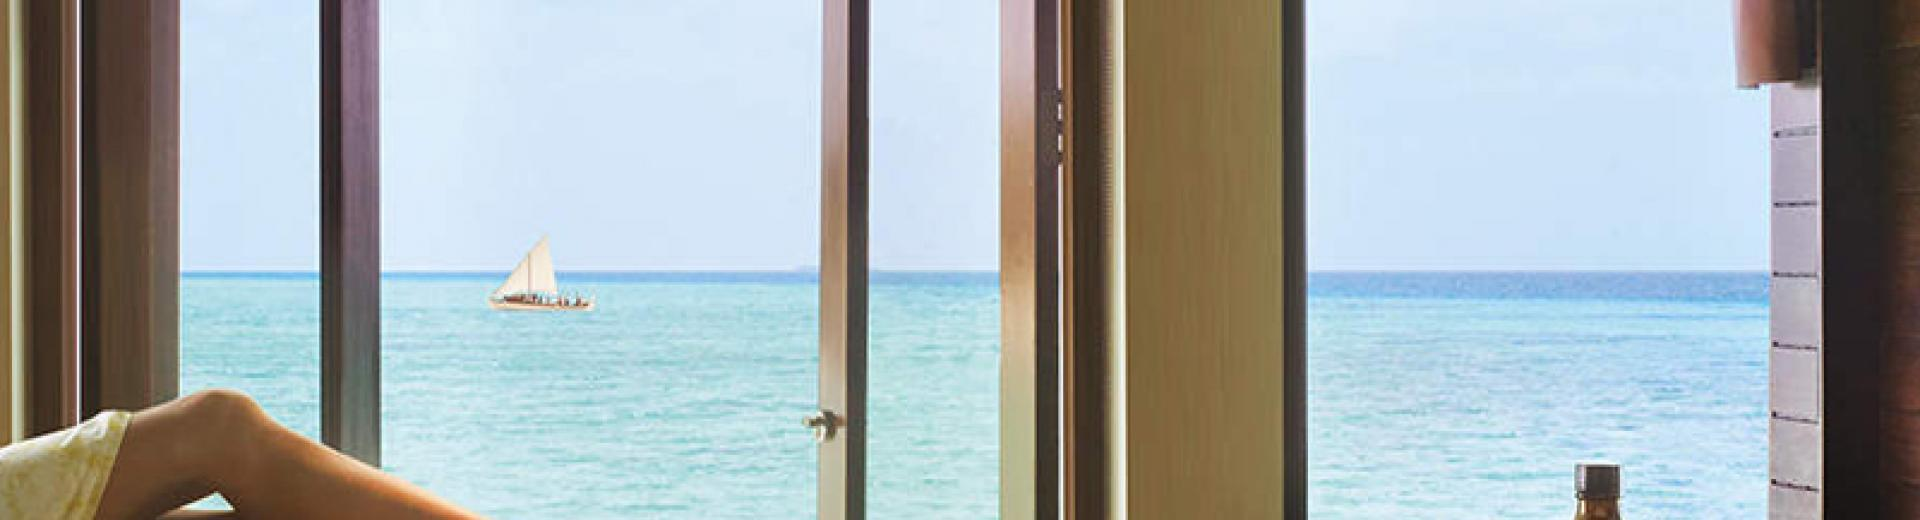 View from the Over Water Treatment Room at OneOnly Spa. Image courtesty of OneOnly Reethi Rah Maldives